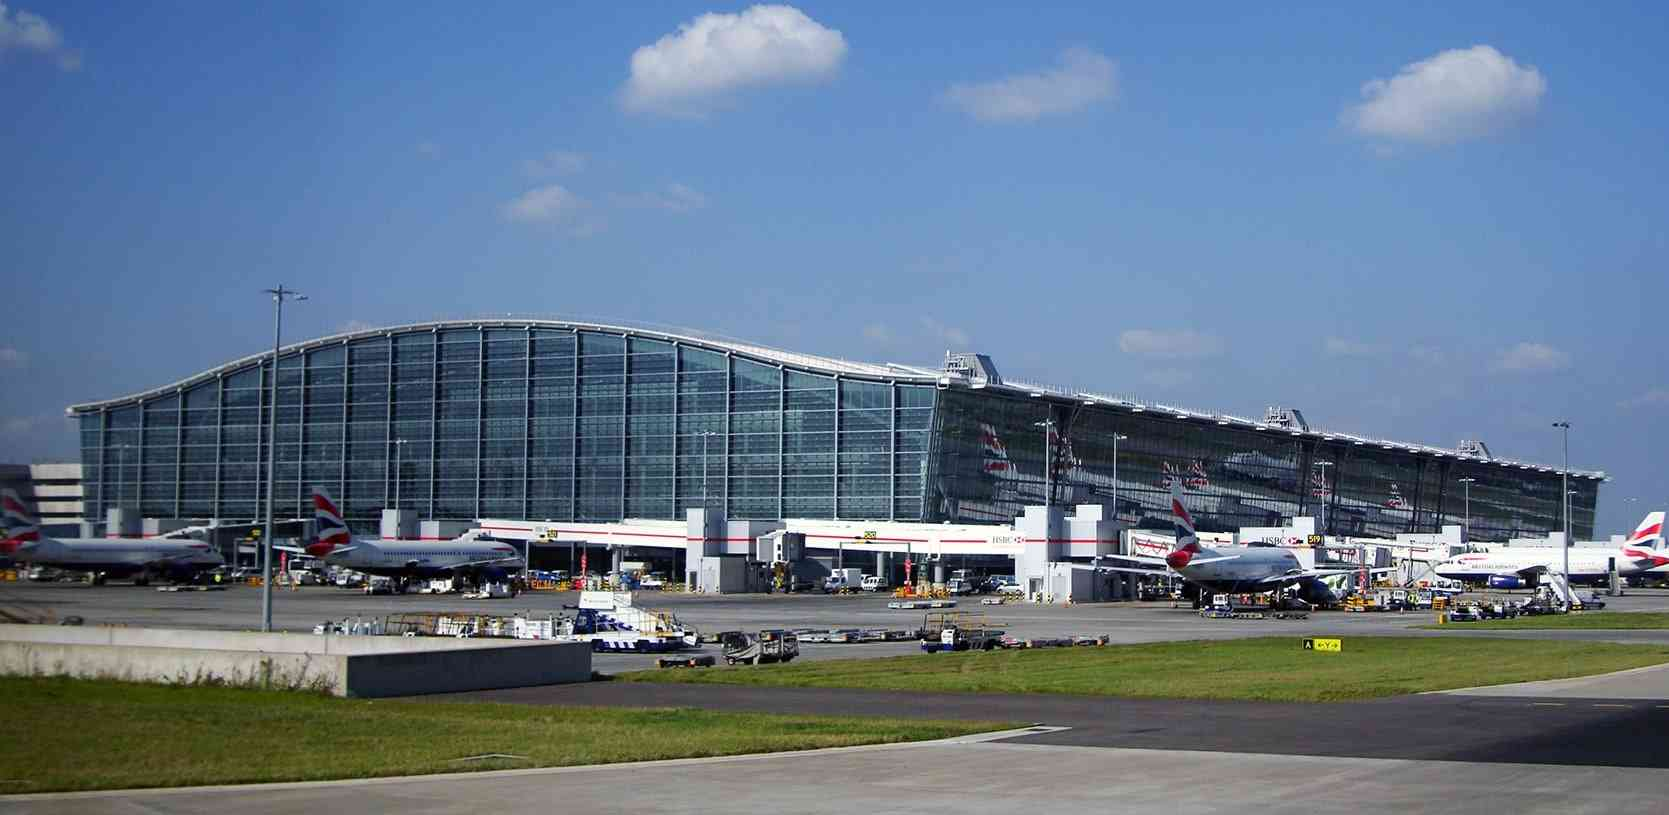 heathrow airport Police were called to a collision involving two staff vehicles on the taxiway at heathrow airport.